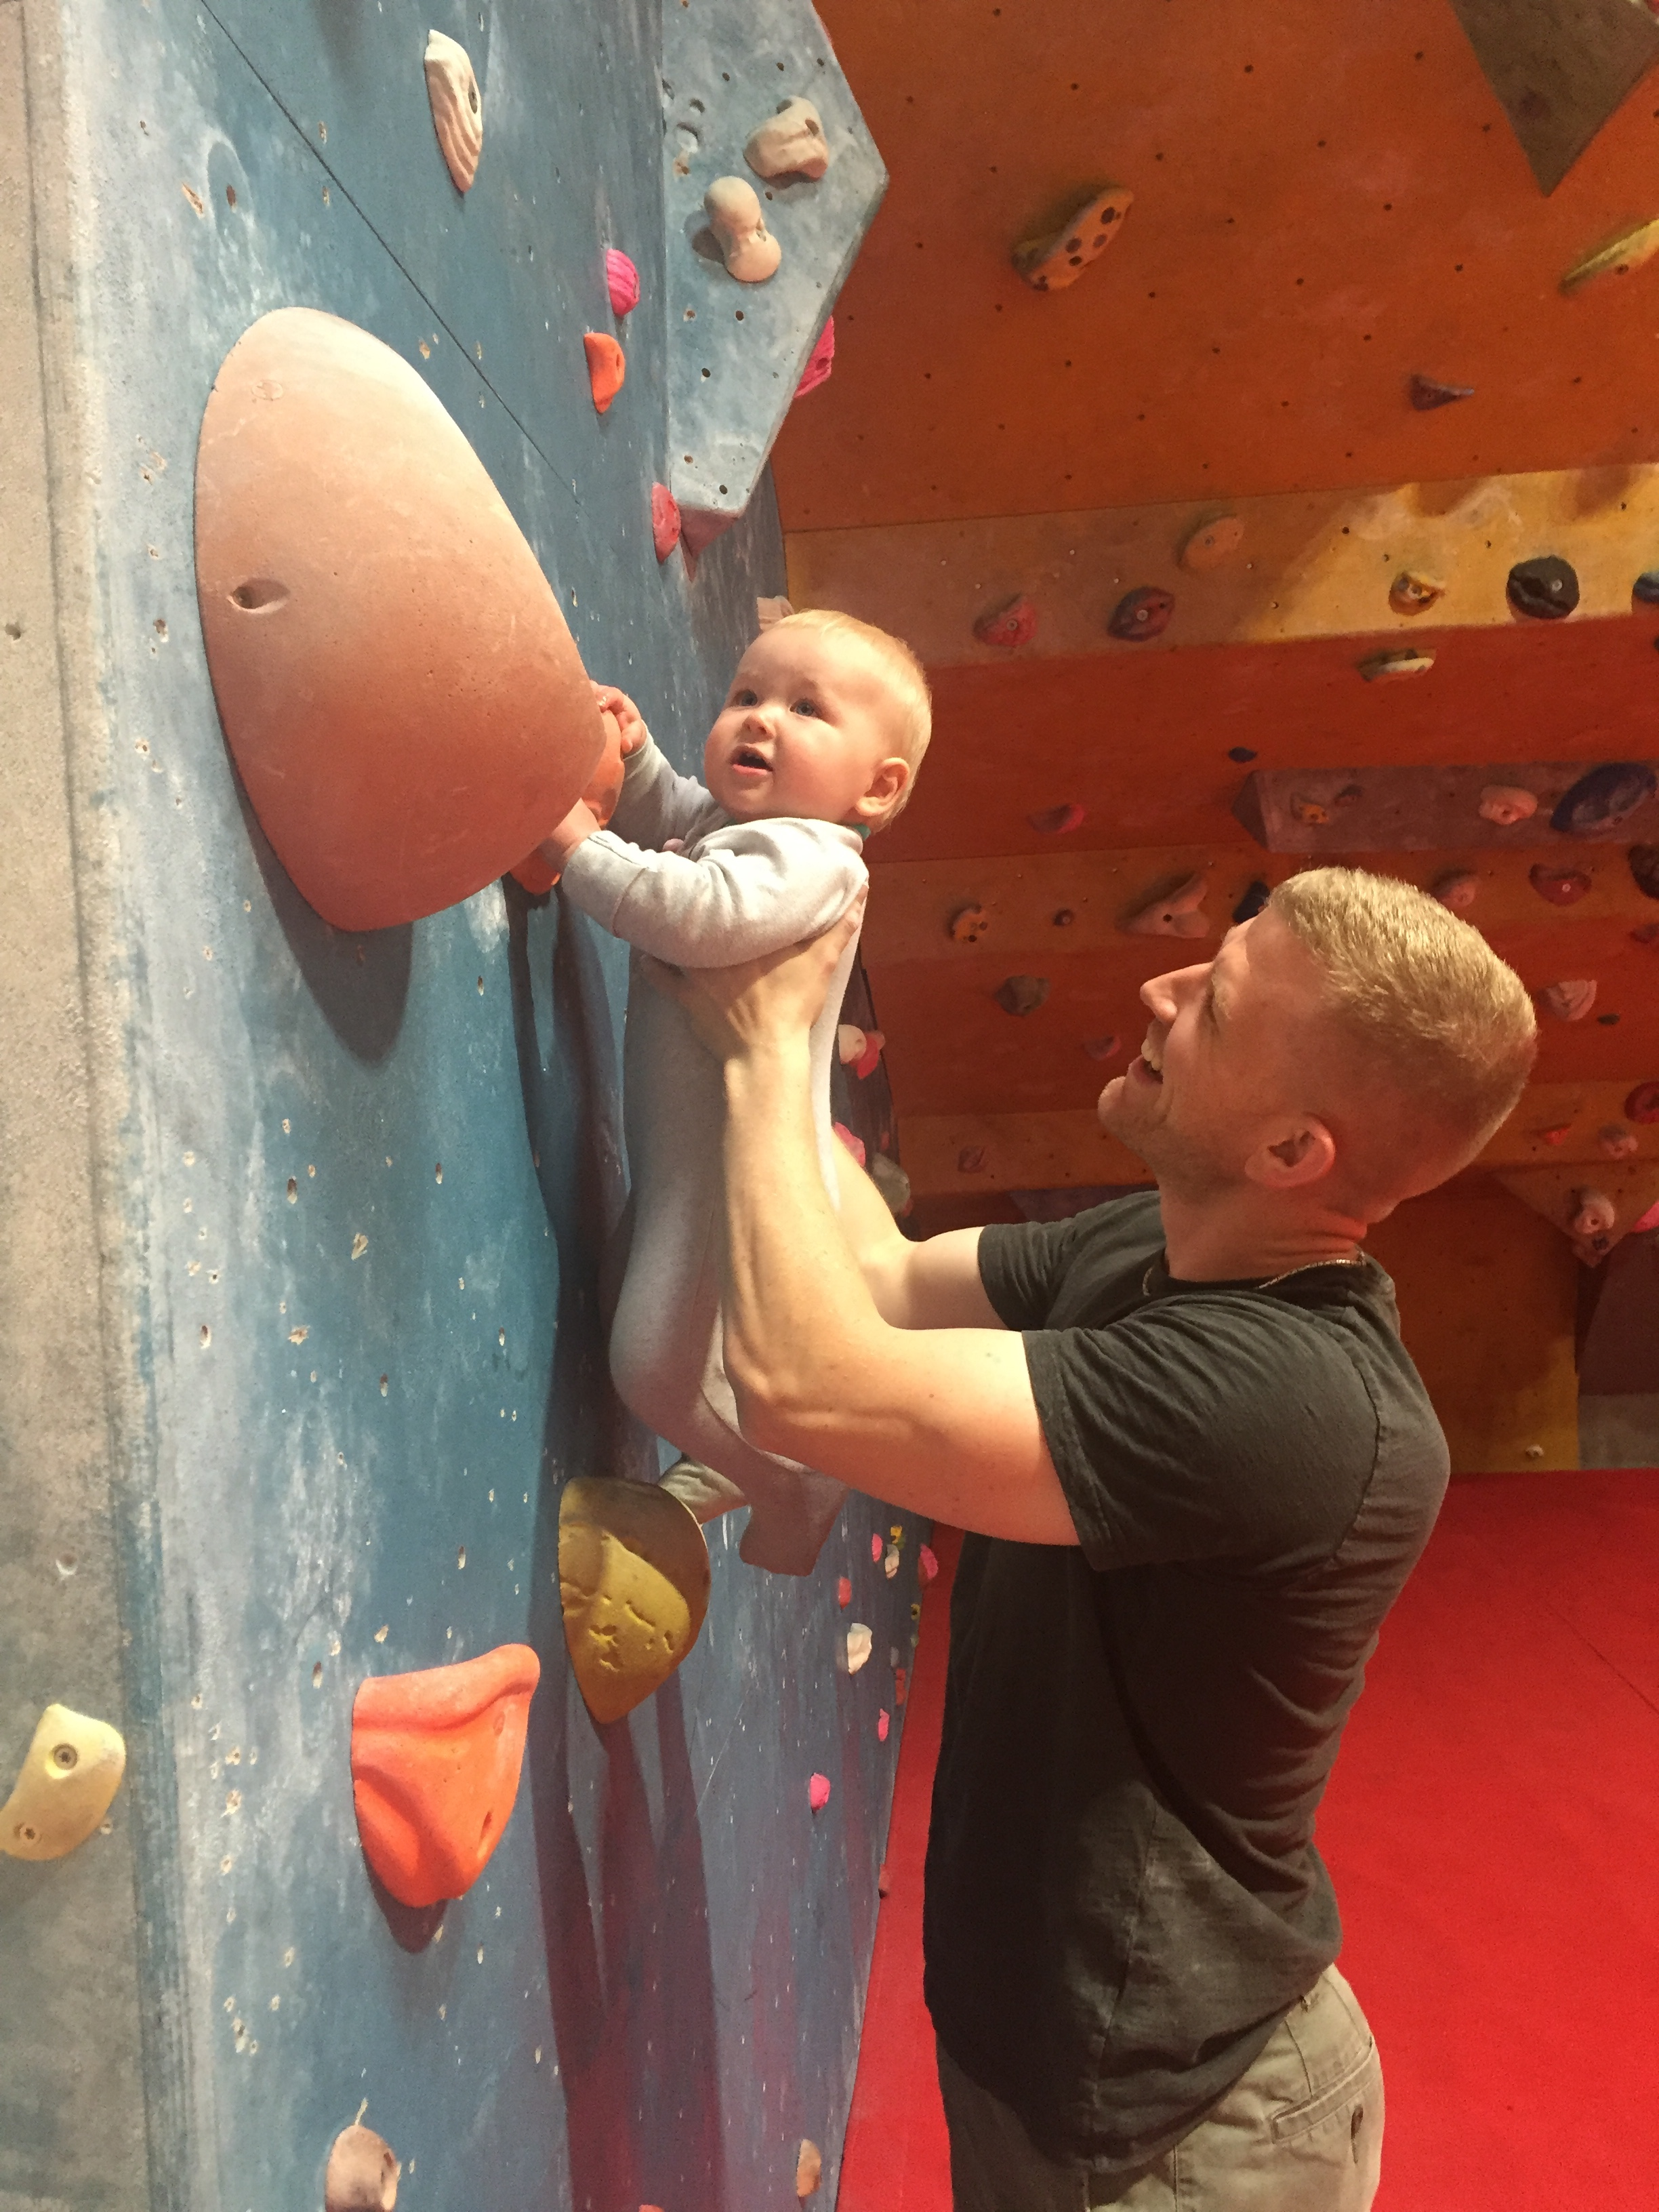 Male Climber Climbing With Baby